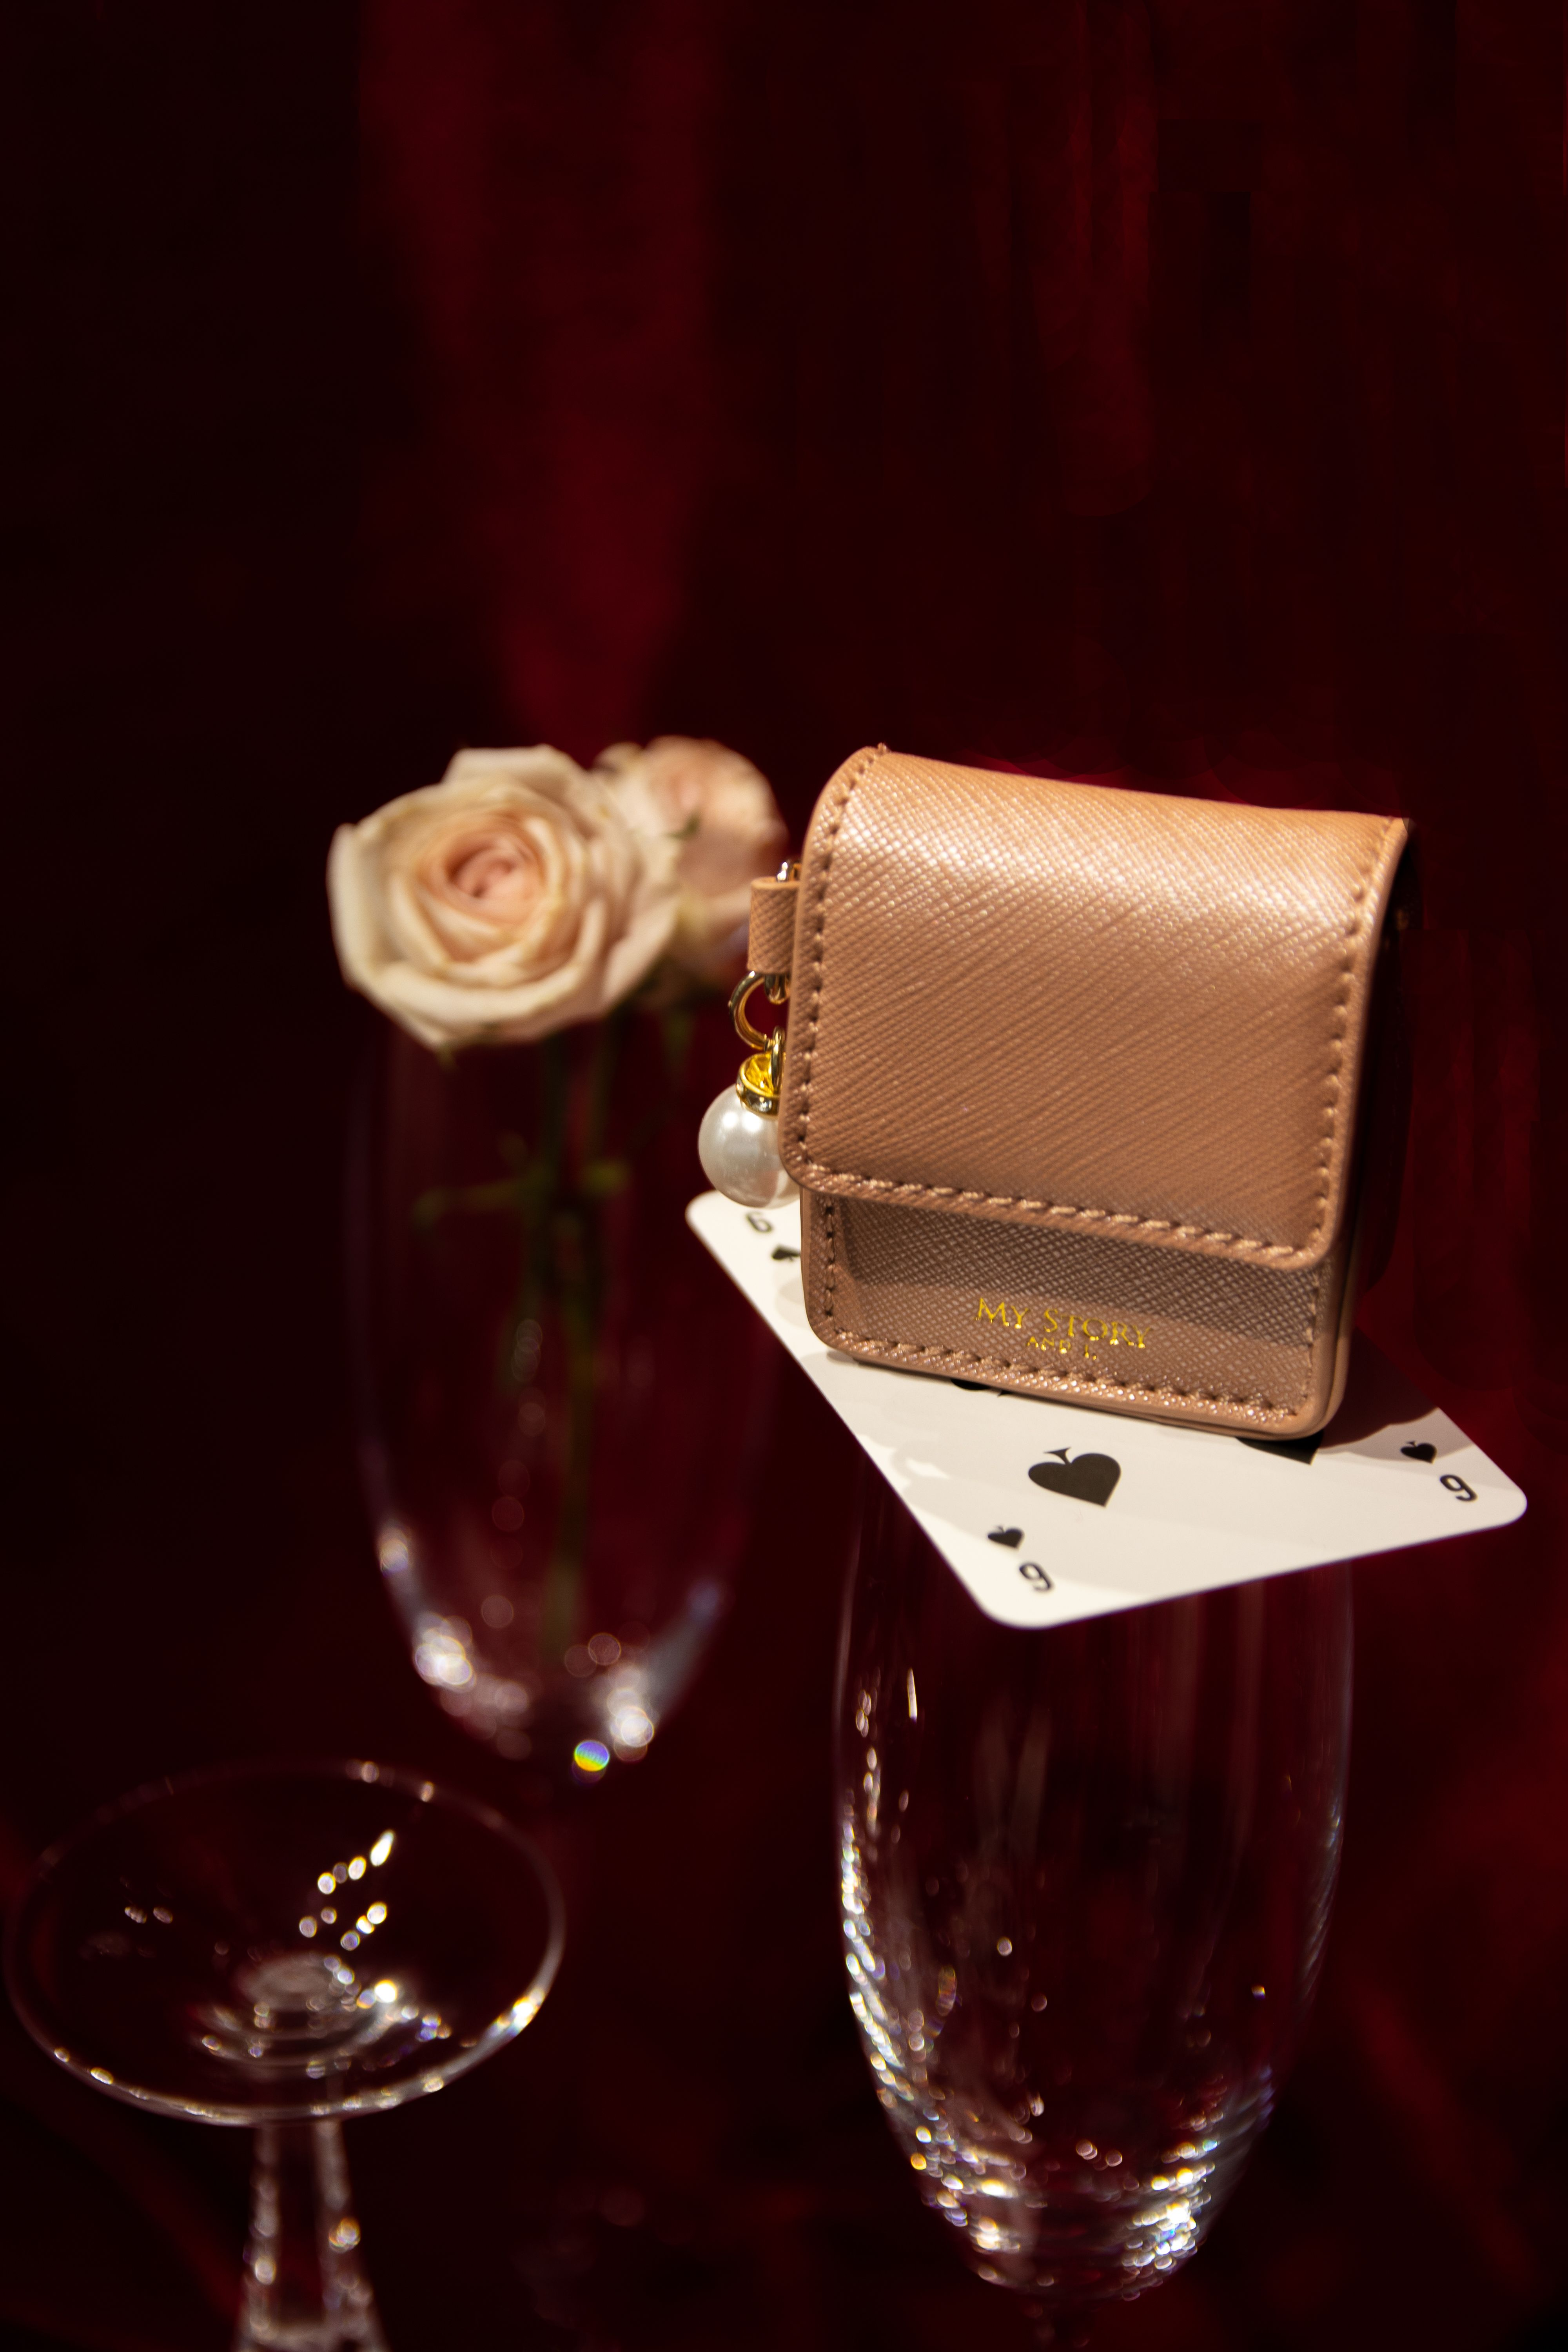 Photo shoot of a bag, playing card and flower - part of the My Story and I collection.